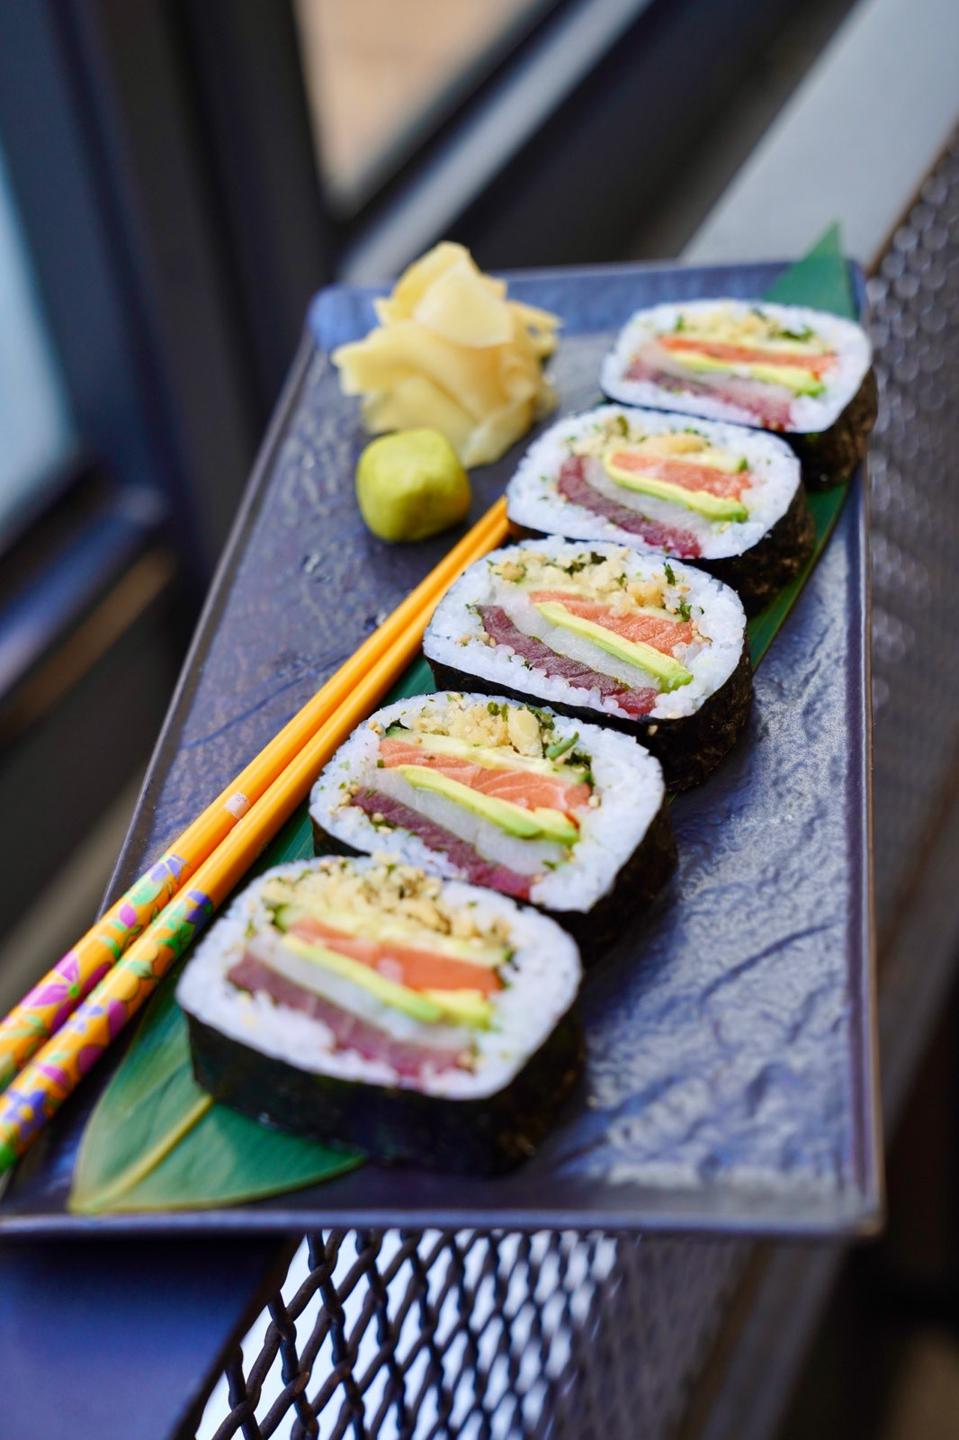 Though it offers a strong traditional menu in its own right, it also has a great sushi menu.